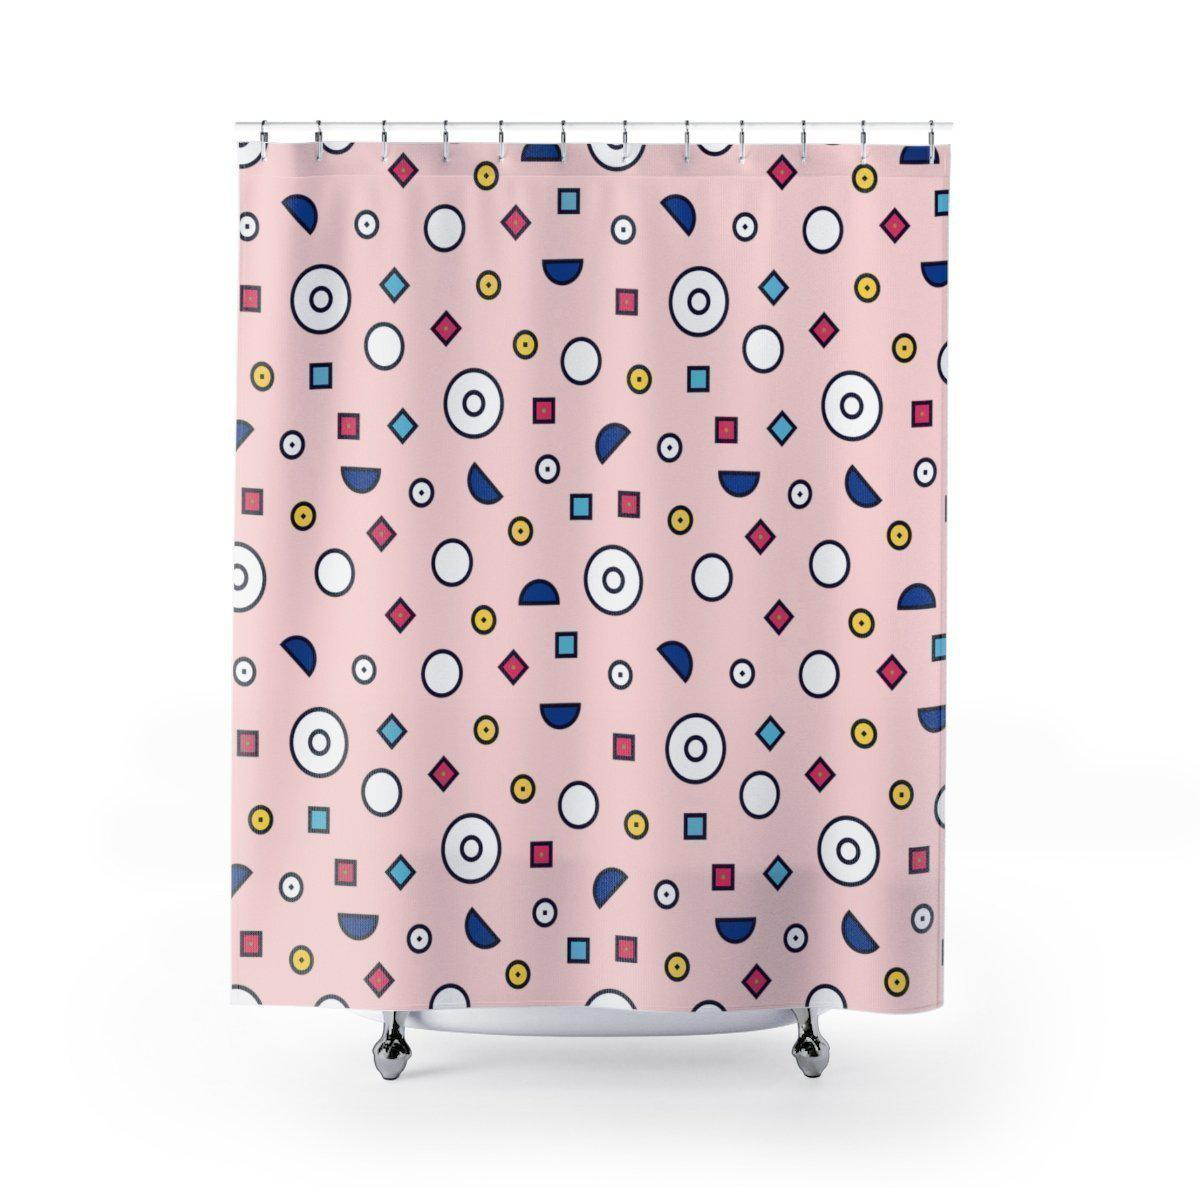 Maison d'Elite Geometric Shower Curtain-Bath - Bathroom Accessories - Shower Accessories - Shower Curtains-Maison d'Elite-71x74-Très Elite